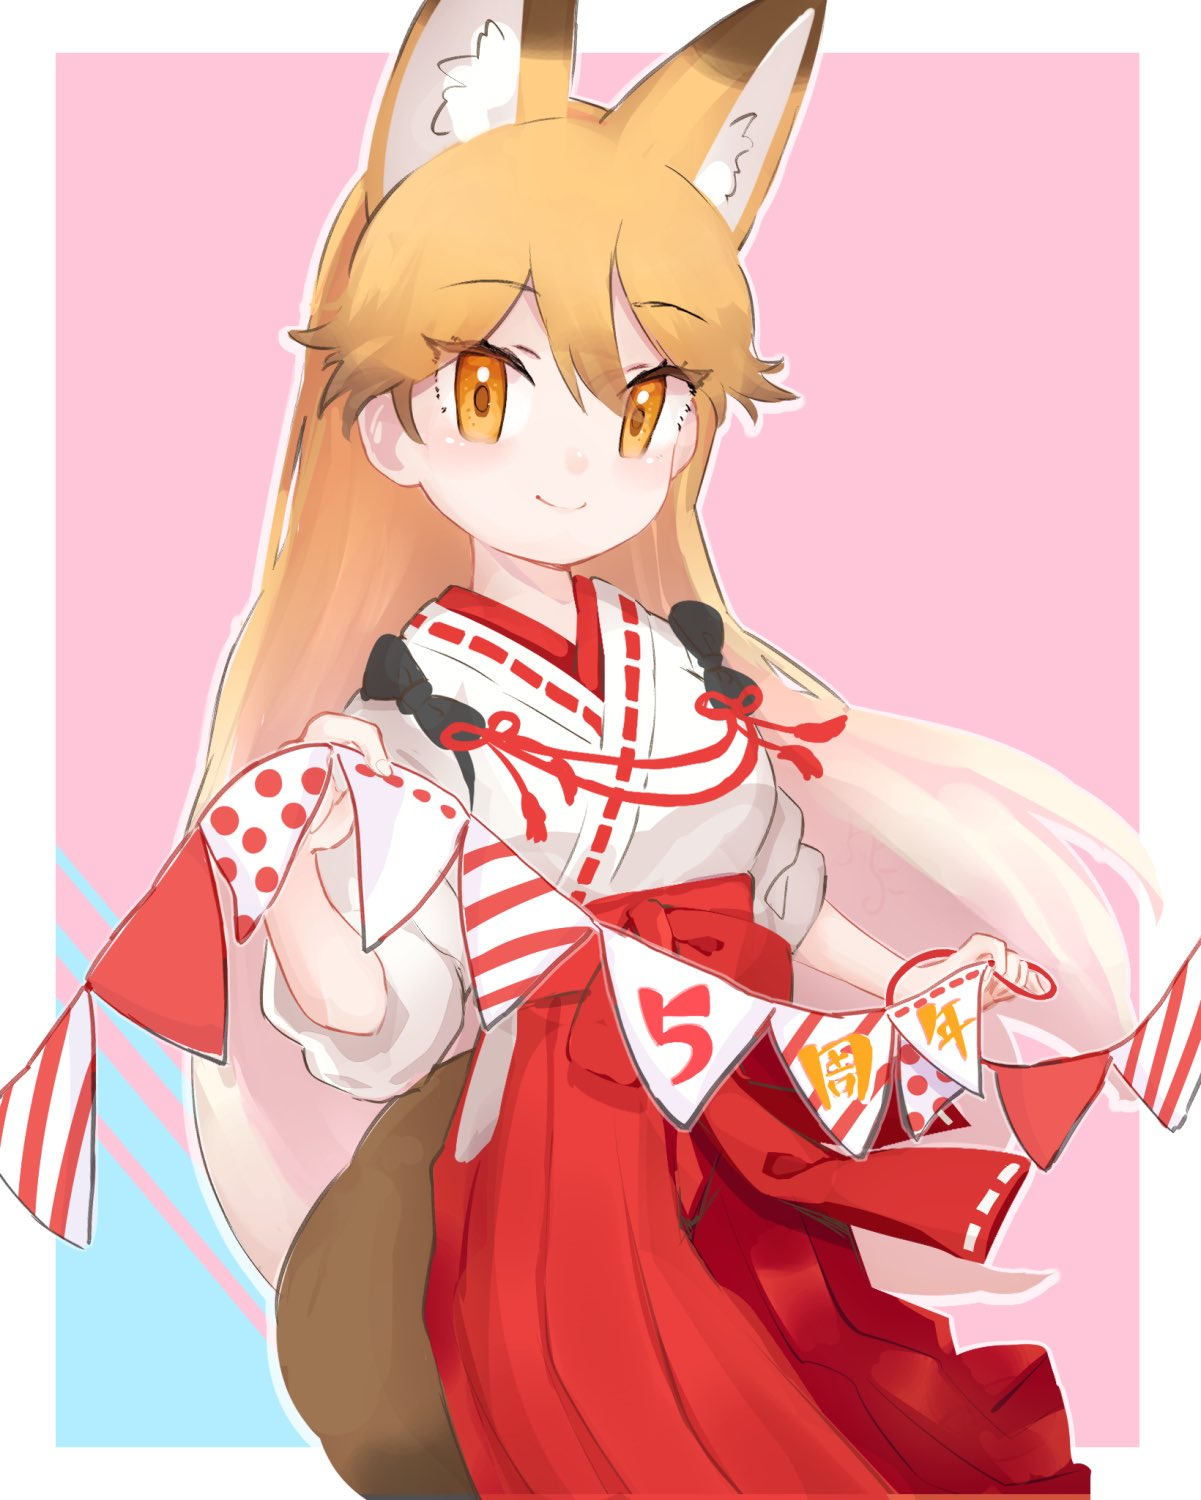 1girl alternate_costume animal_ears black_bow bow brown_hair commentary_request extra_ears eyebrows_visible_through_hair ezo_red_fox_(kemono_friends) fox_ears fox_girl fox_tail hakama highres japanese_clothes kemono_friends long_hair miko multicolored_hair orange_eyes orange_hair pants red_pants shirt smile solo streamers tail tatsuno_newo translation_request white_hair white_shirt